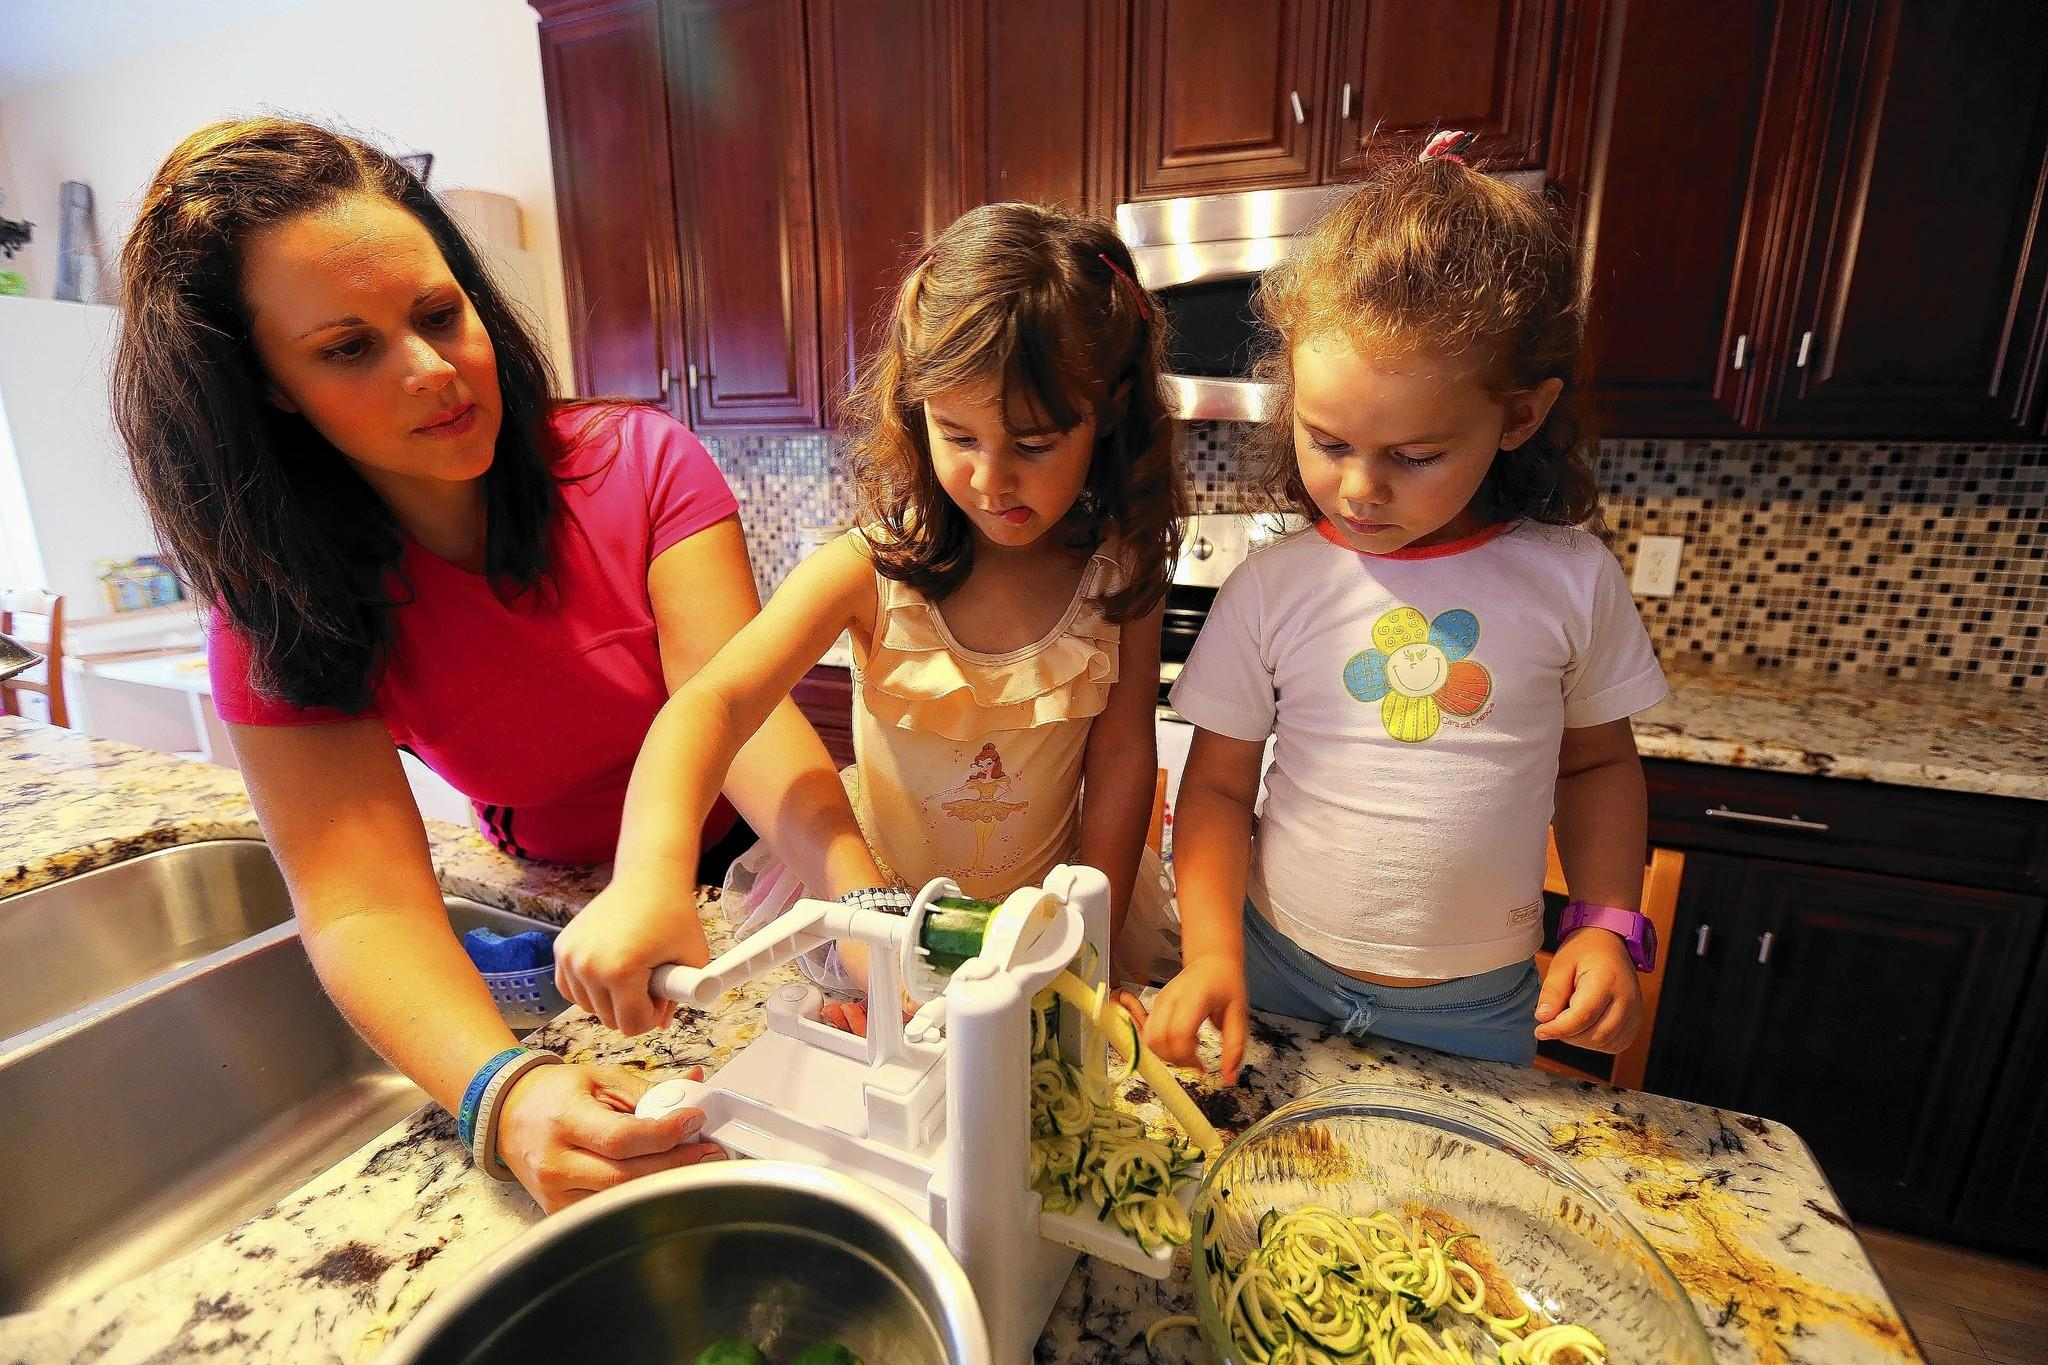 Donni Alvarenga with her twin daughters, Leilani and Zoe, 3, at their Orlando home. They are grating zucchini to make fettuccine alfredo with zucchini pasta.